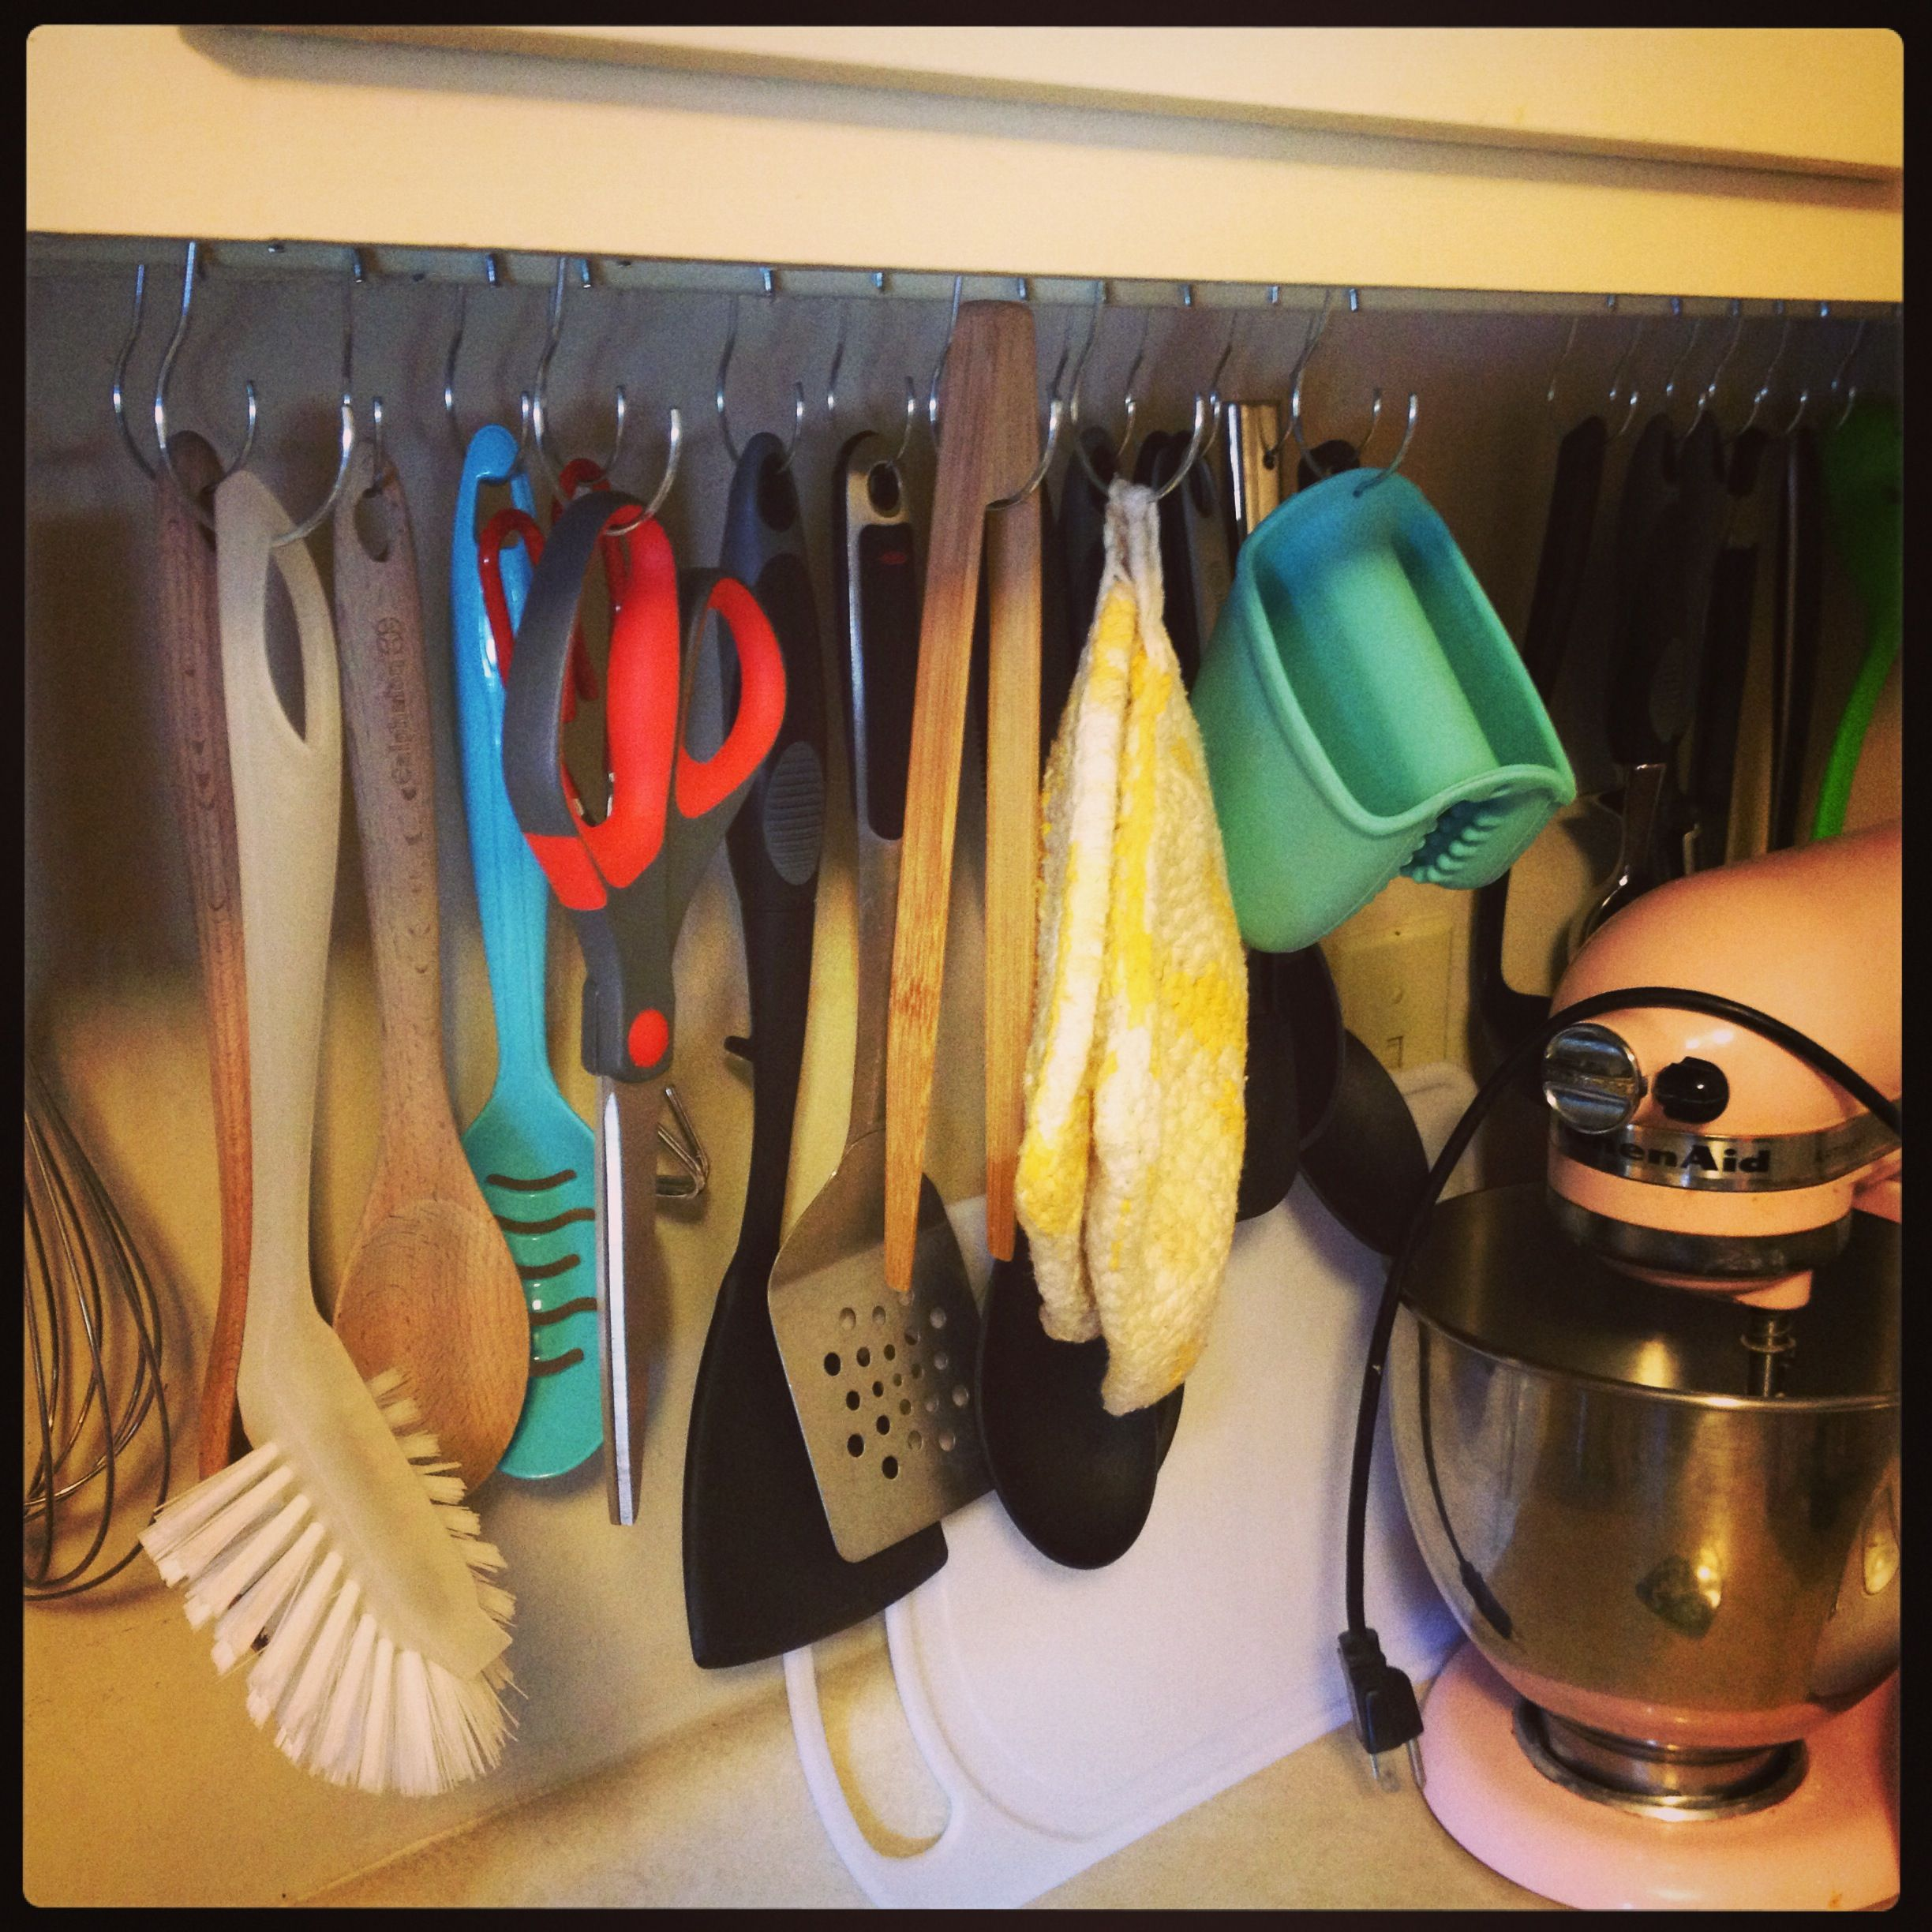 We Used Tension Rods To Hang Utensils Under Our Apartment S